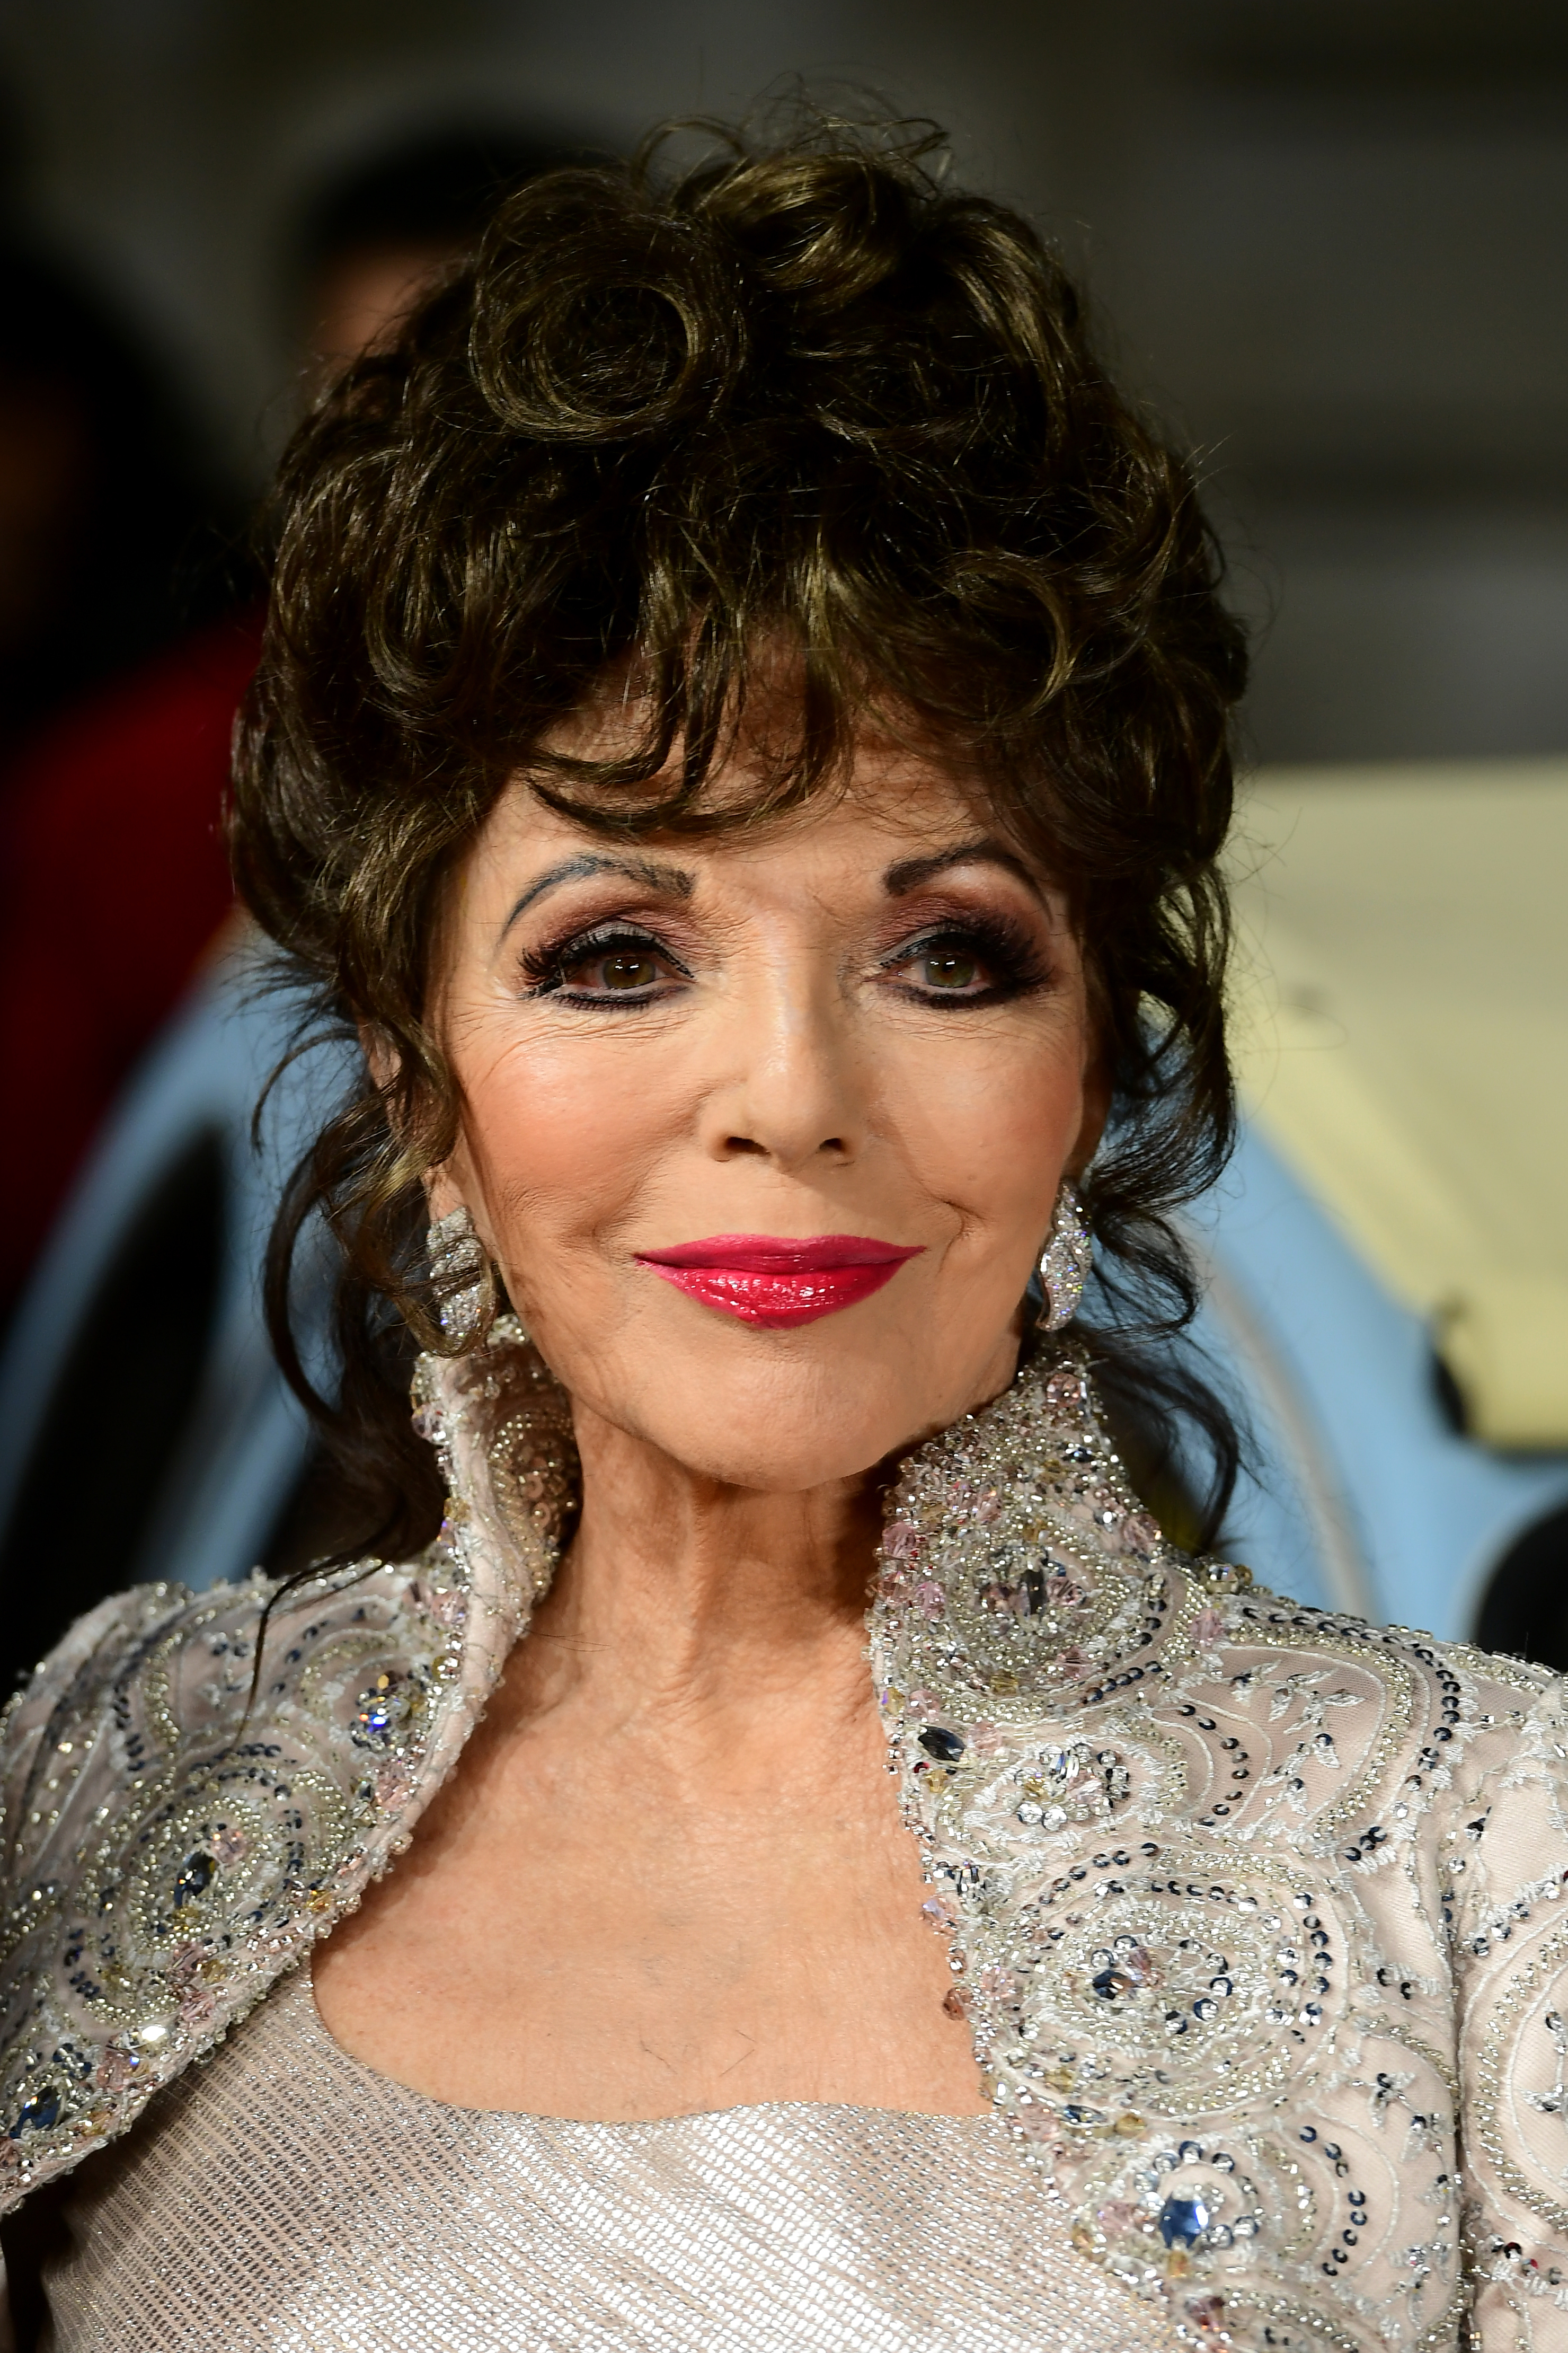 Dame Joan Collins dismisses son's Anthony Newley 'paedophile' claims ...